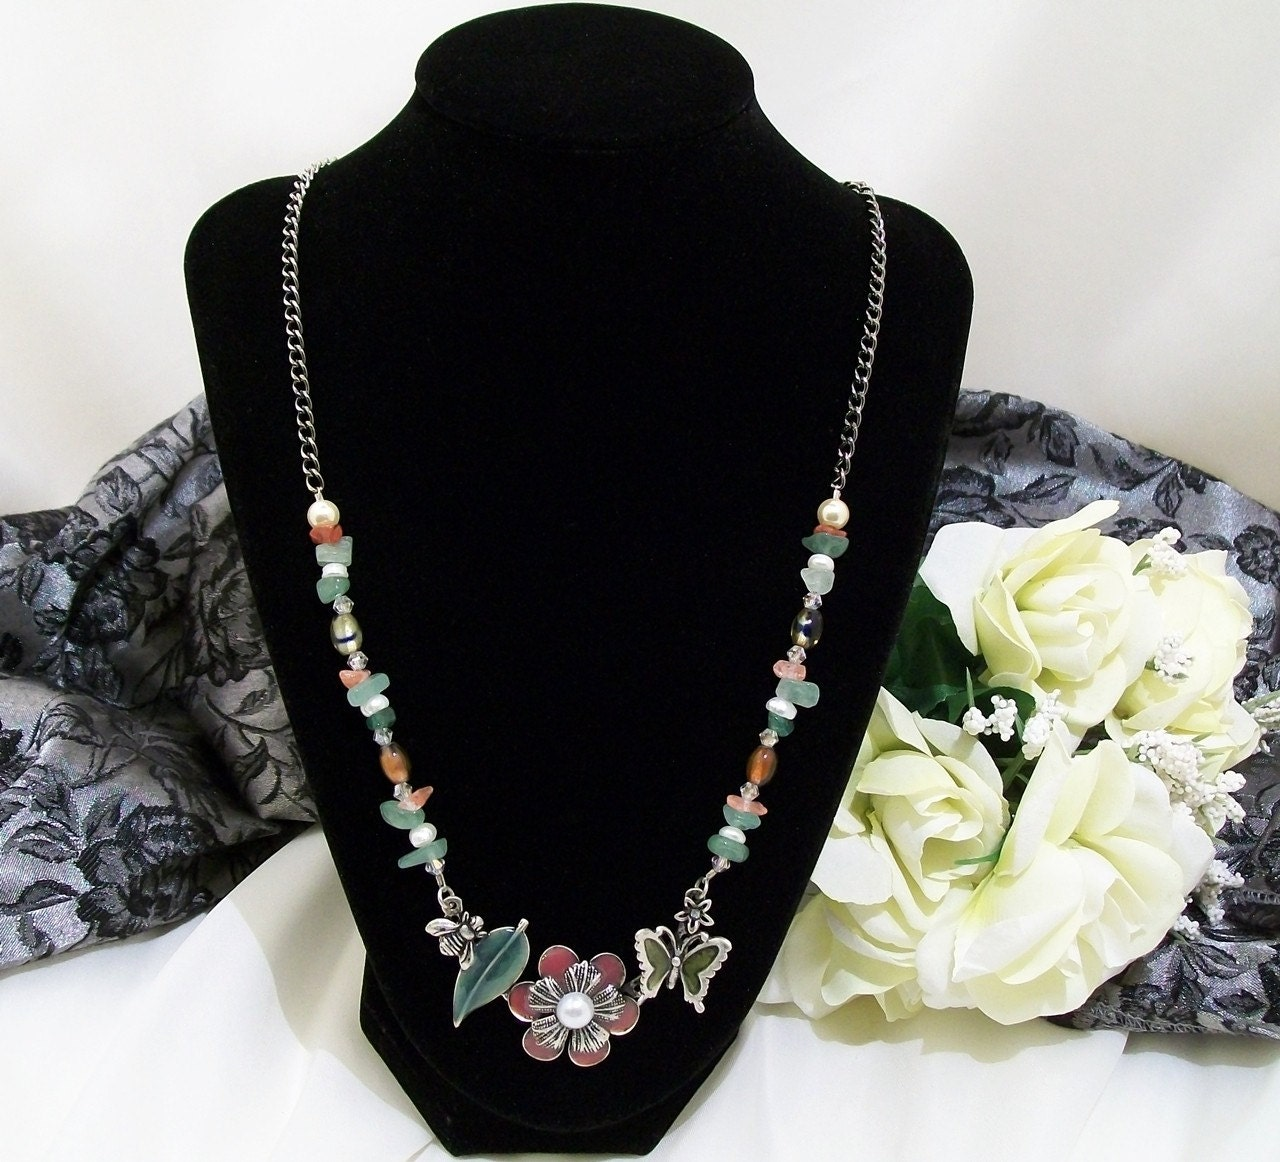 Bumble Bees and Butterflies Necklace